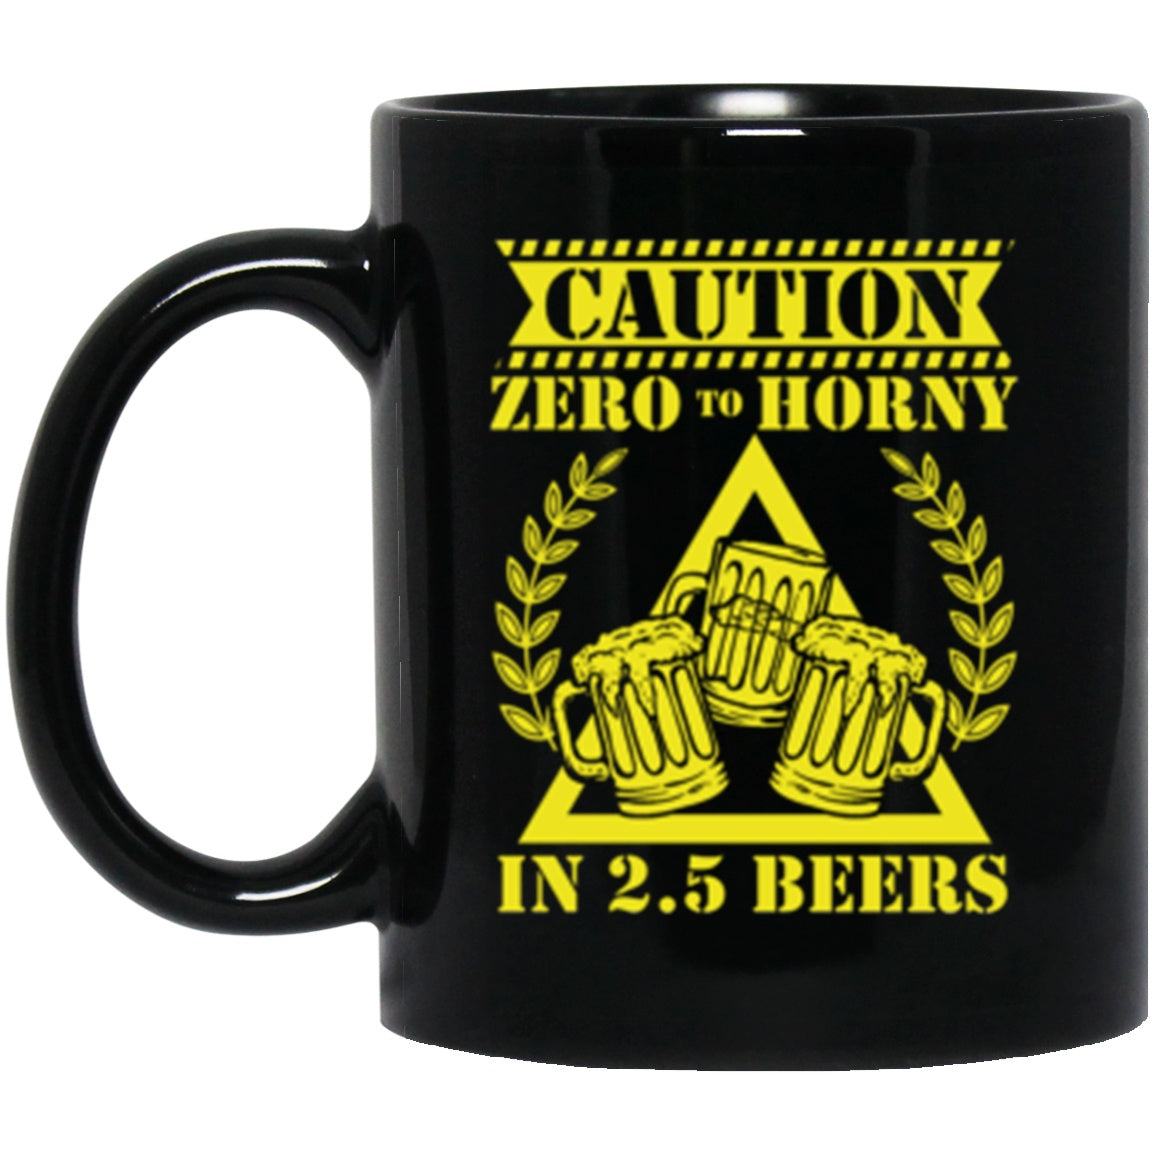 Drinkware - 2.5 Beers Black Mug 11oz (2-sided)